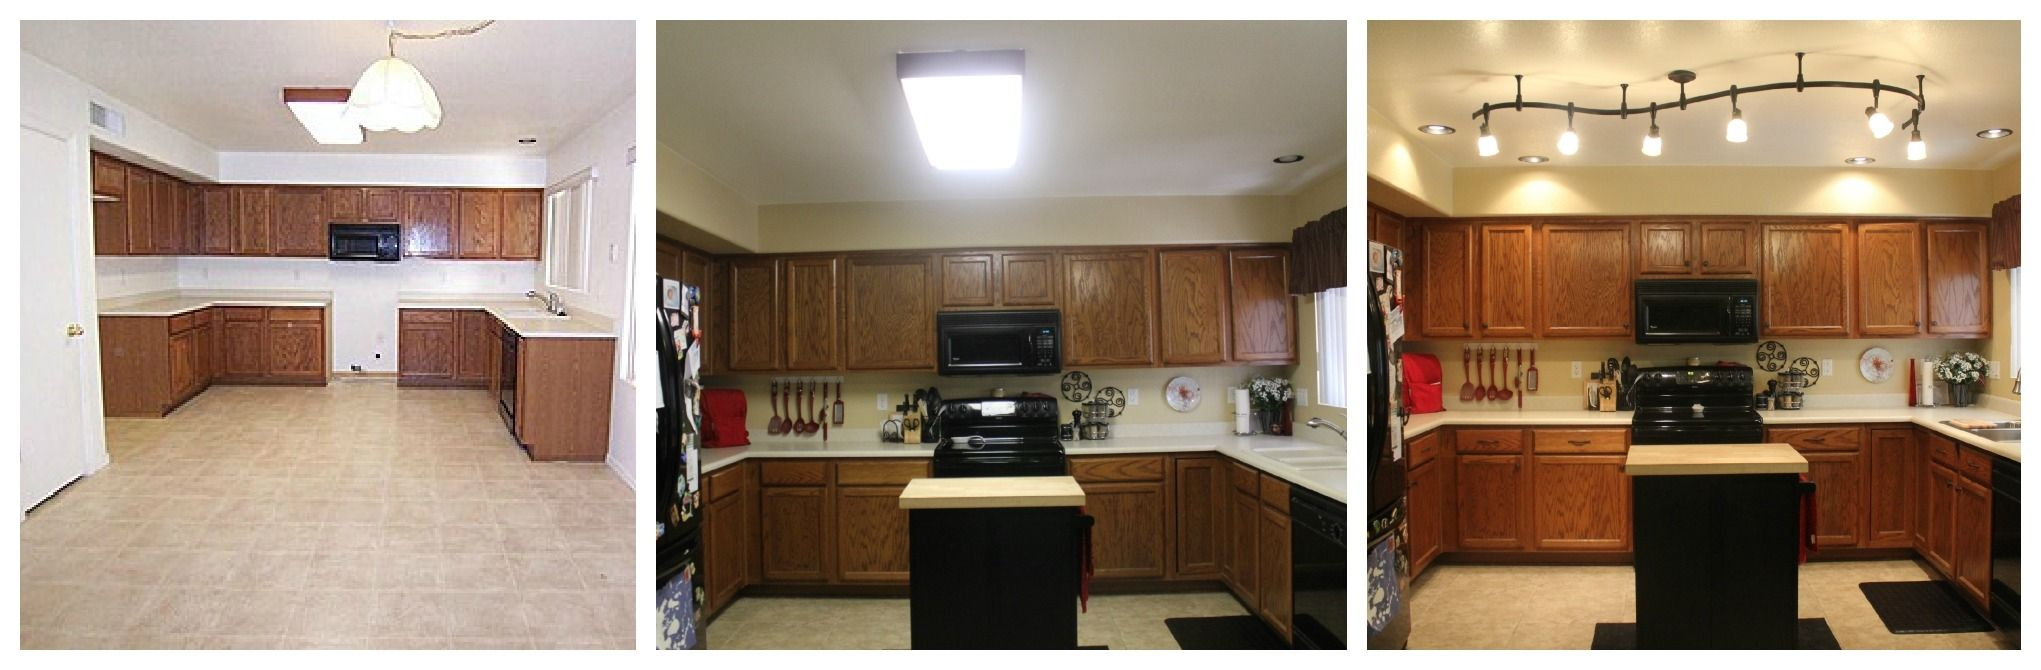 Kitchen fluorescent light alternative